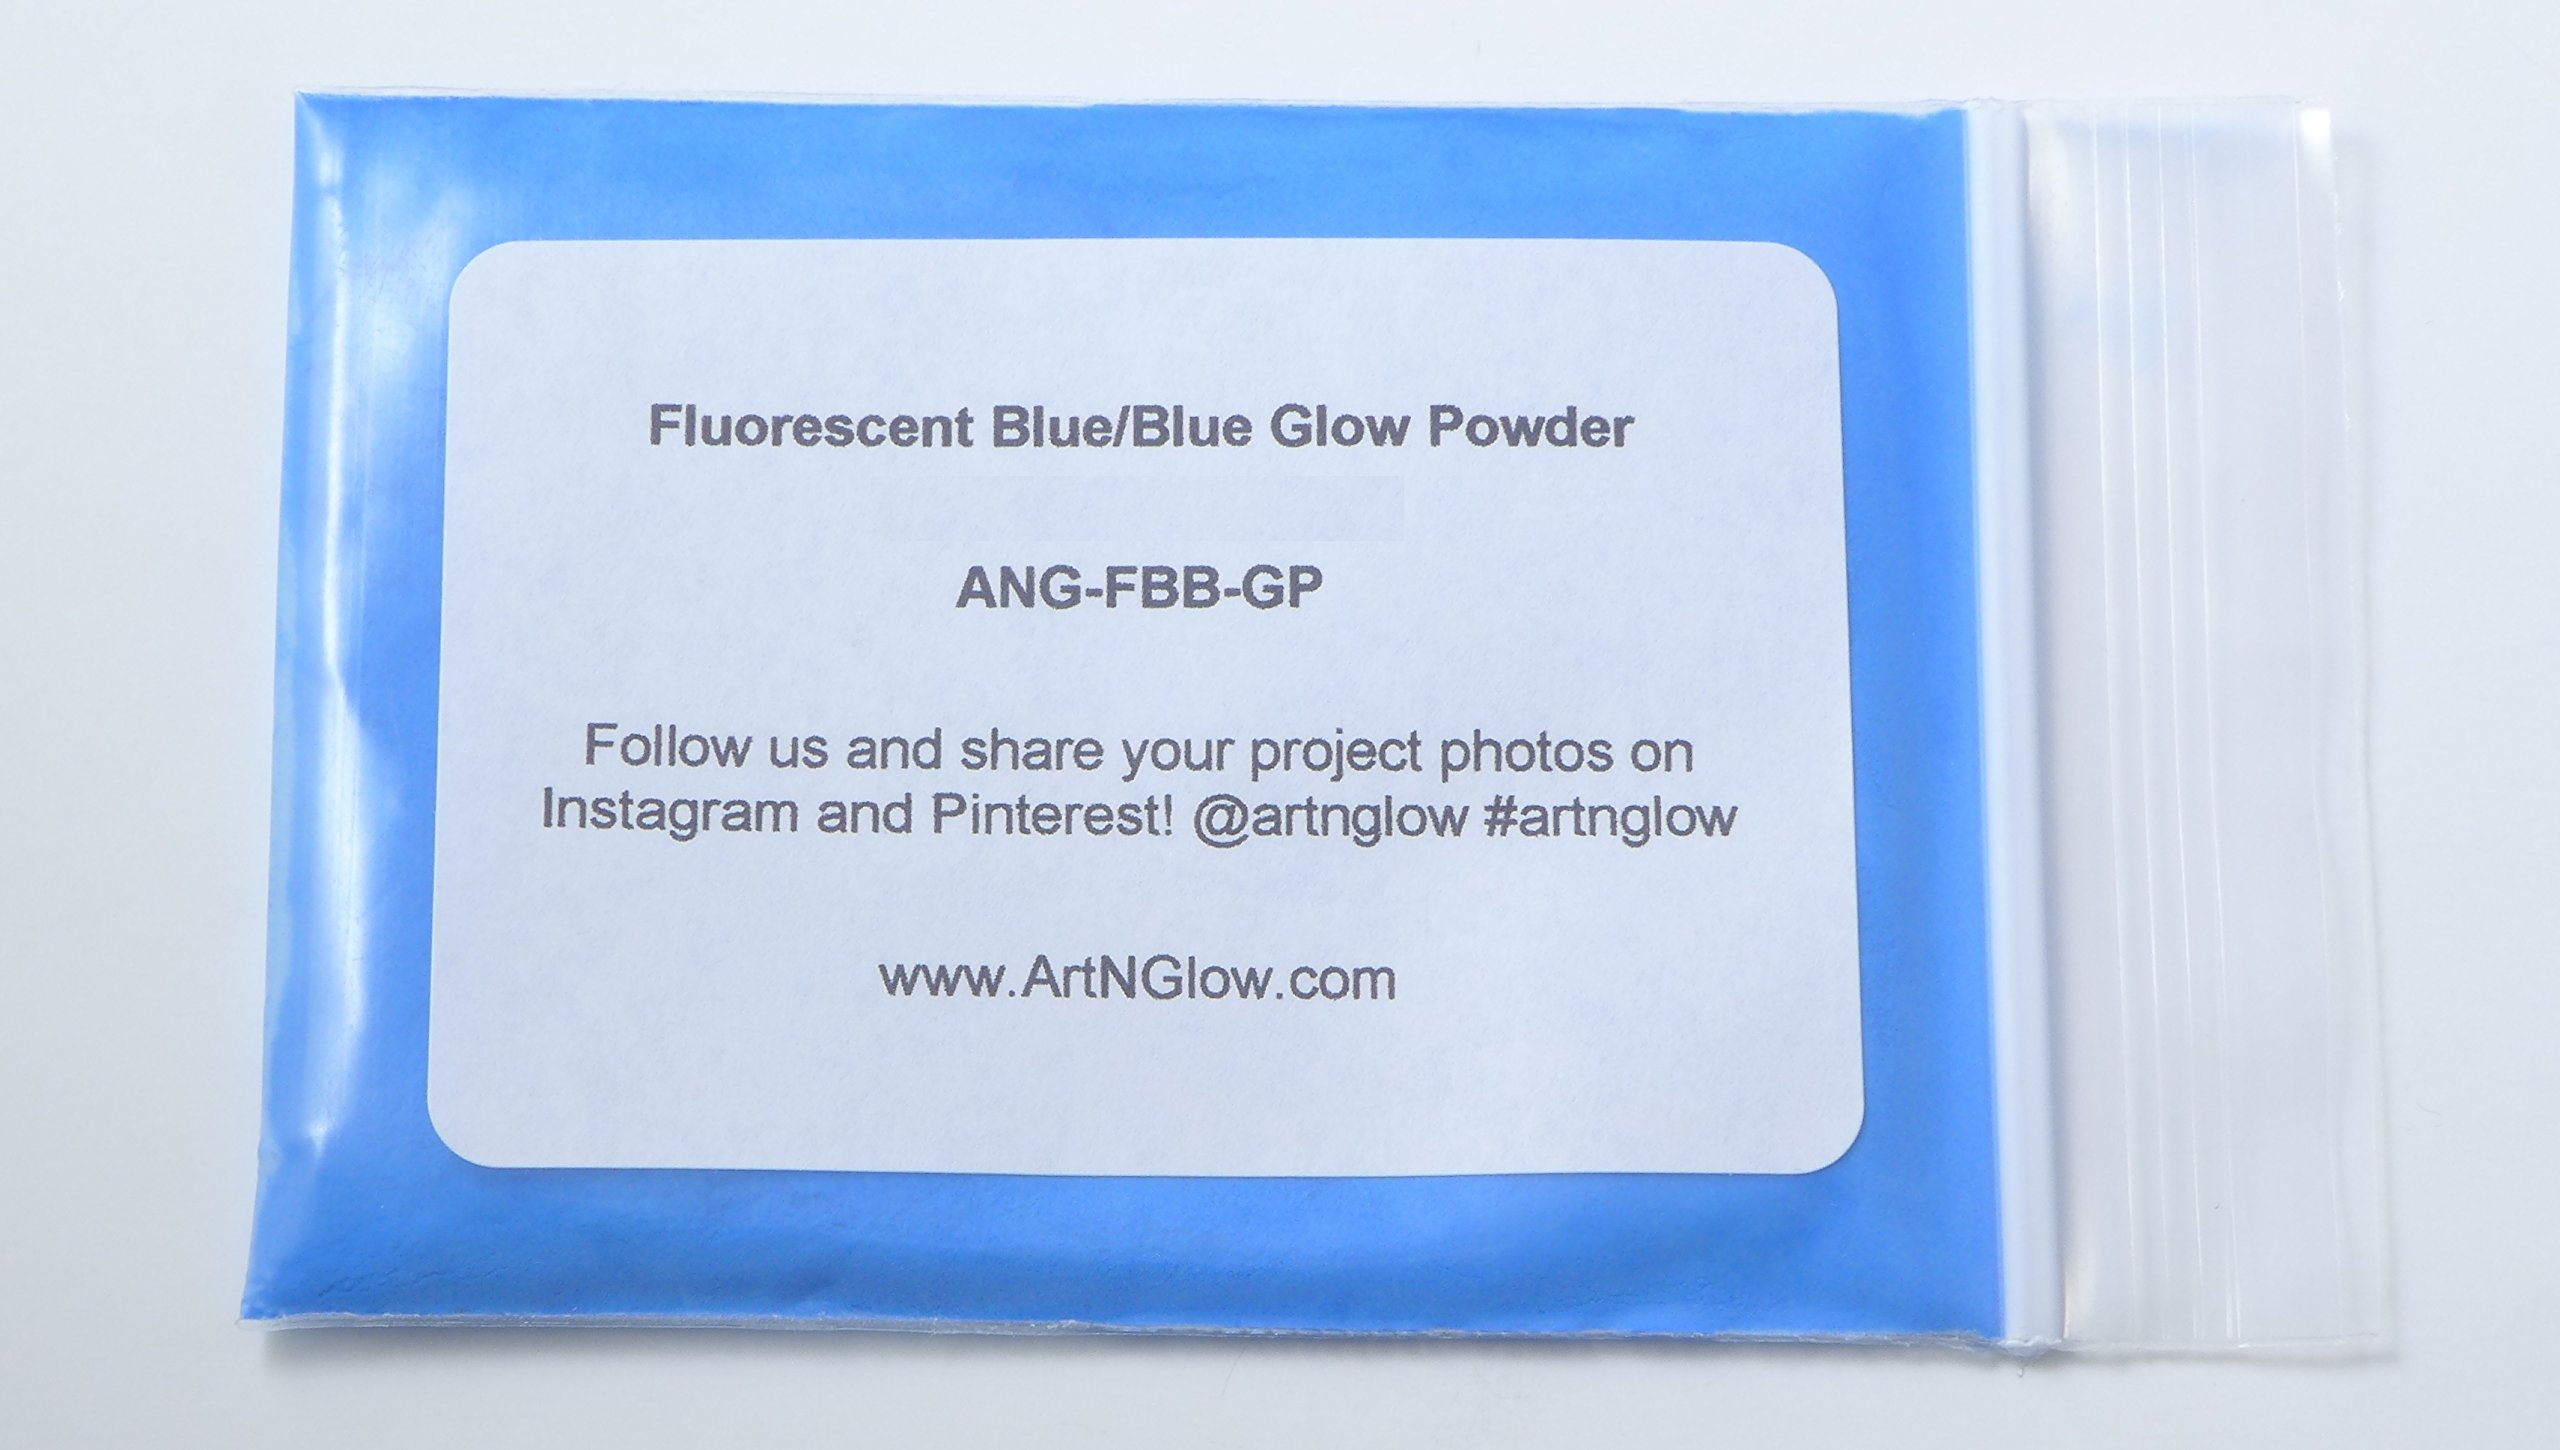 Glow In The Dark Pigment Powder - 1 Kilogram (Neutral and Fluorescent) (Fluorescent Blue) by Art 'N Glow (Image #1)